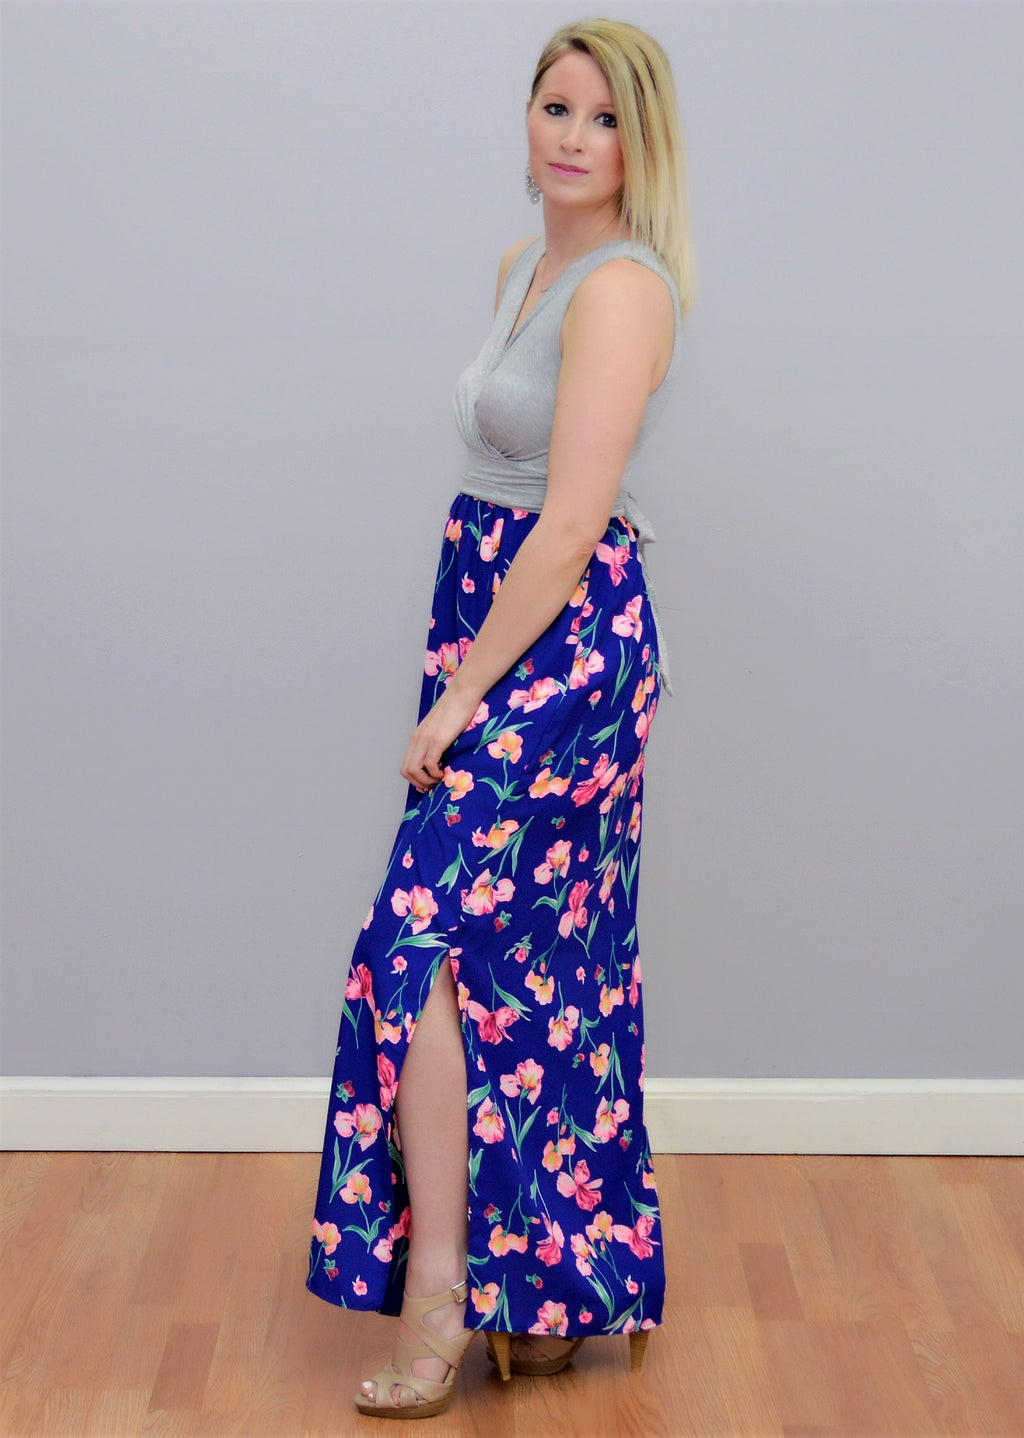 Bria Bella & Co - Gray & Royal Floral Maxi